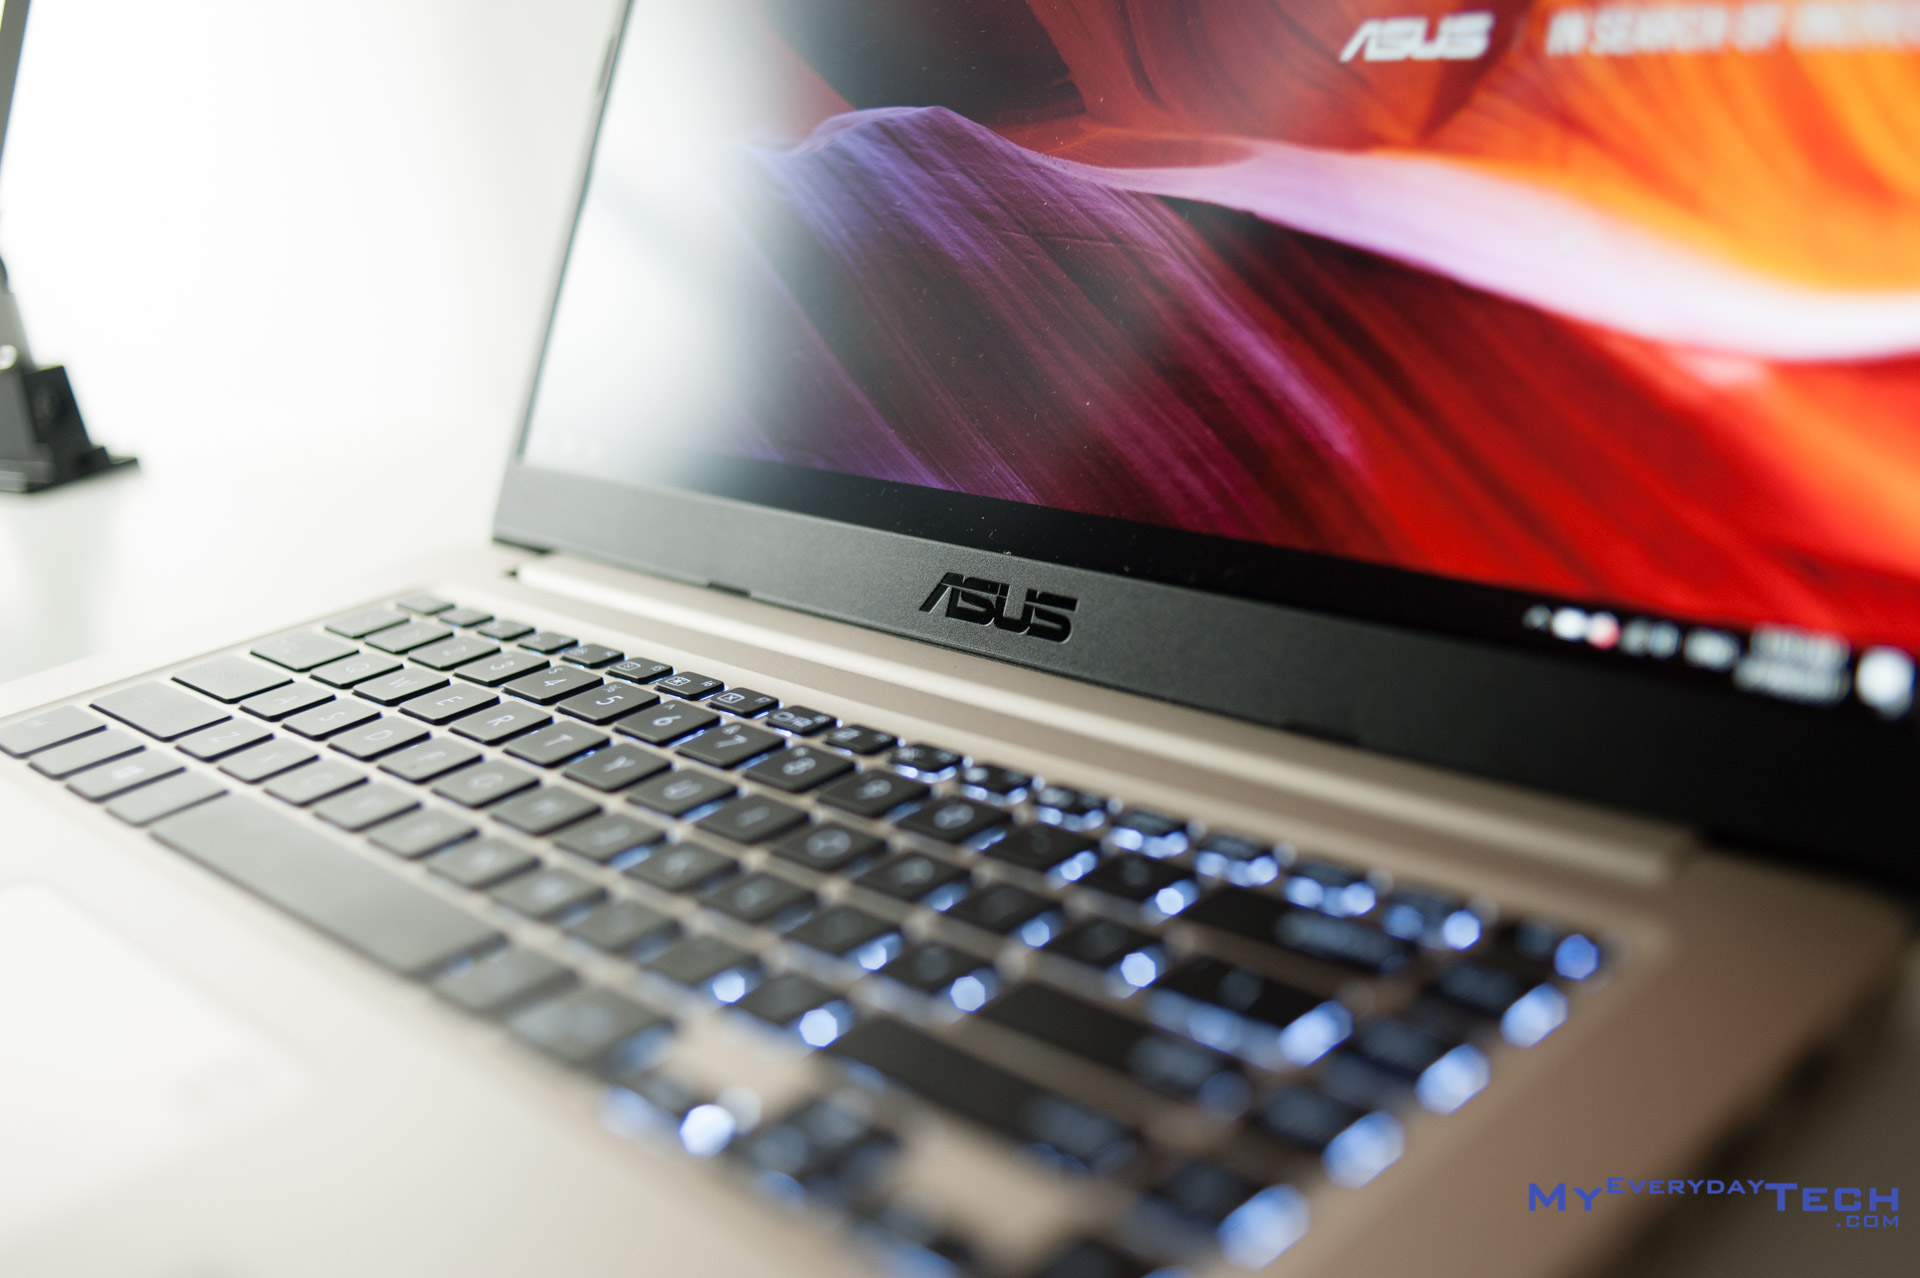 ASUS VivoBook S15 (S510U) Review: Portable 15-incher on Budget